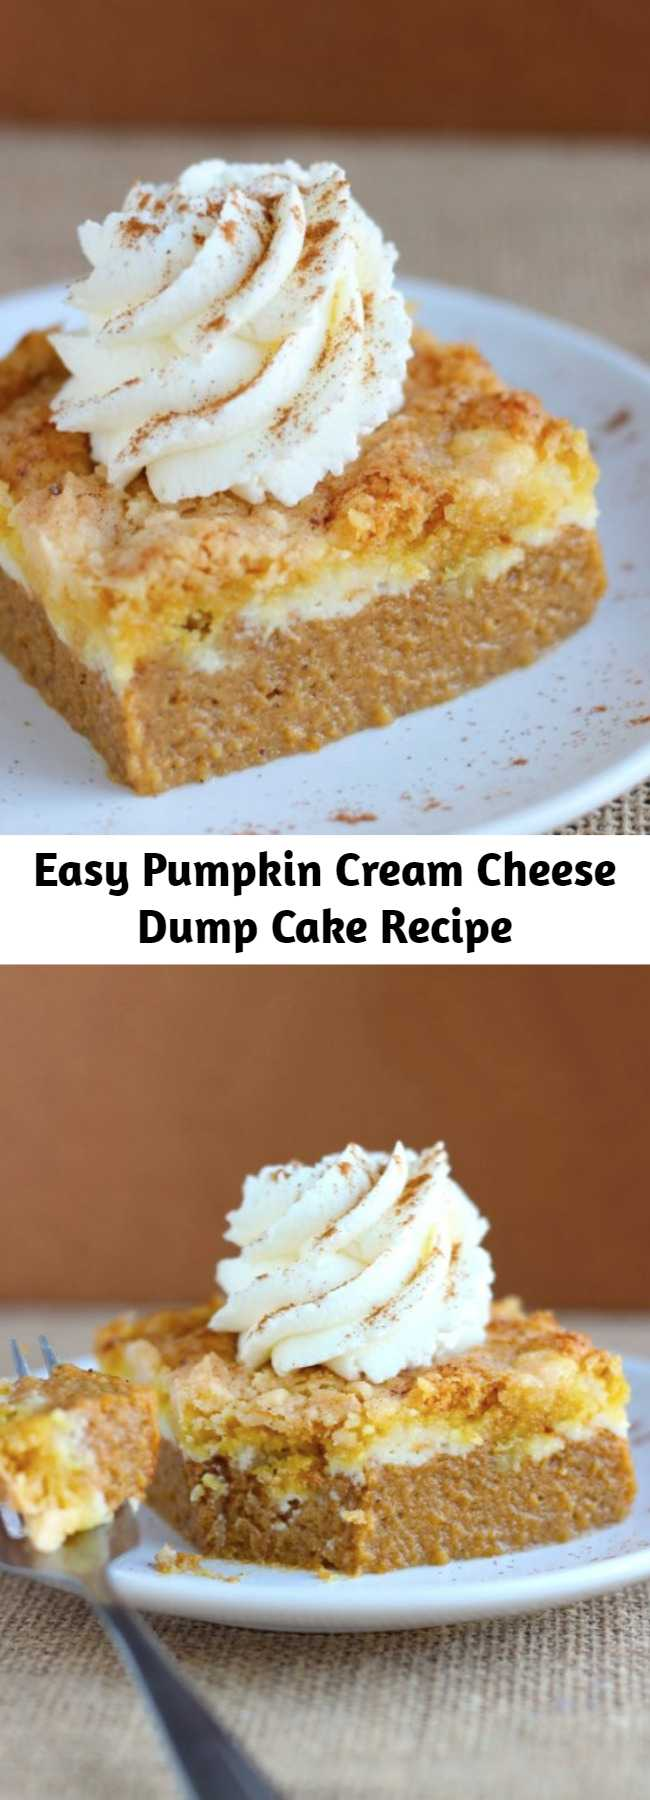 Easy Pumpkin Cream Cheese Dump Cake Recipe - BETTER and way easier than pumpkin pie! This Pumpkin Cream Cheese Dump Cake is the best way to serve pumpkin pie to a crowd!